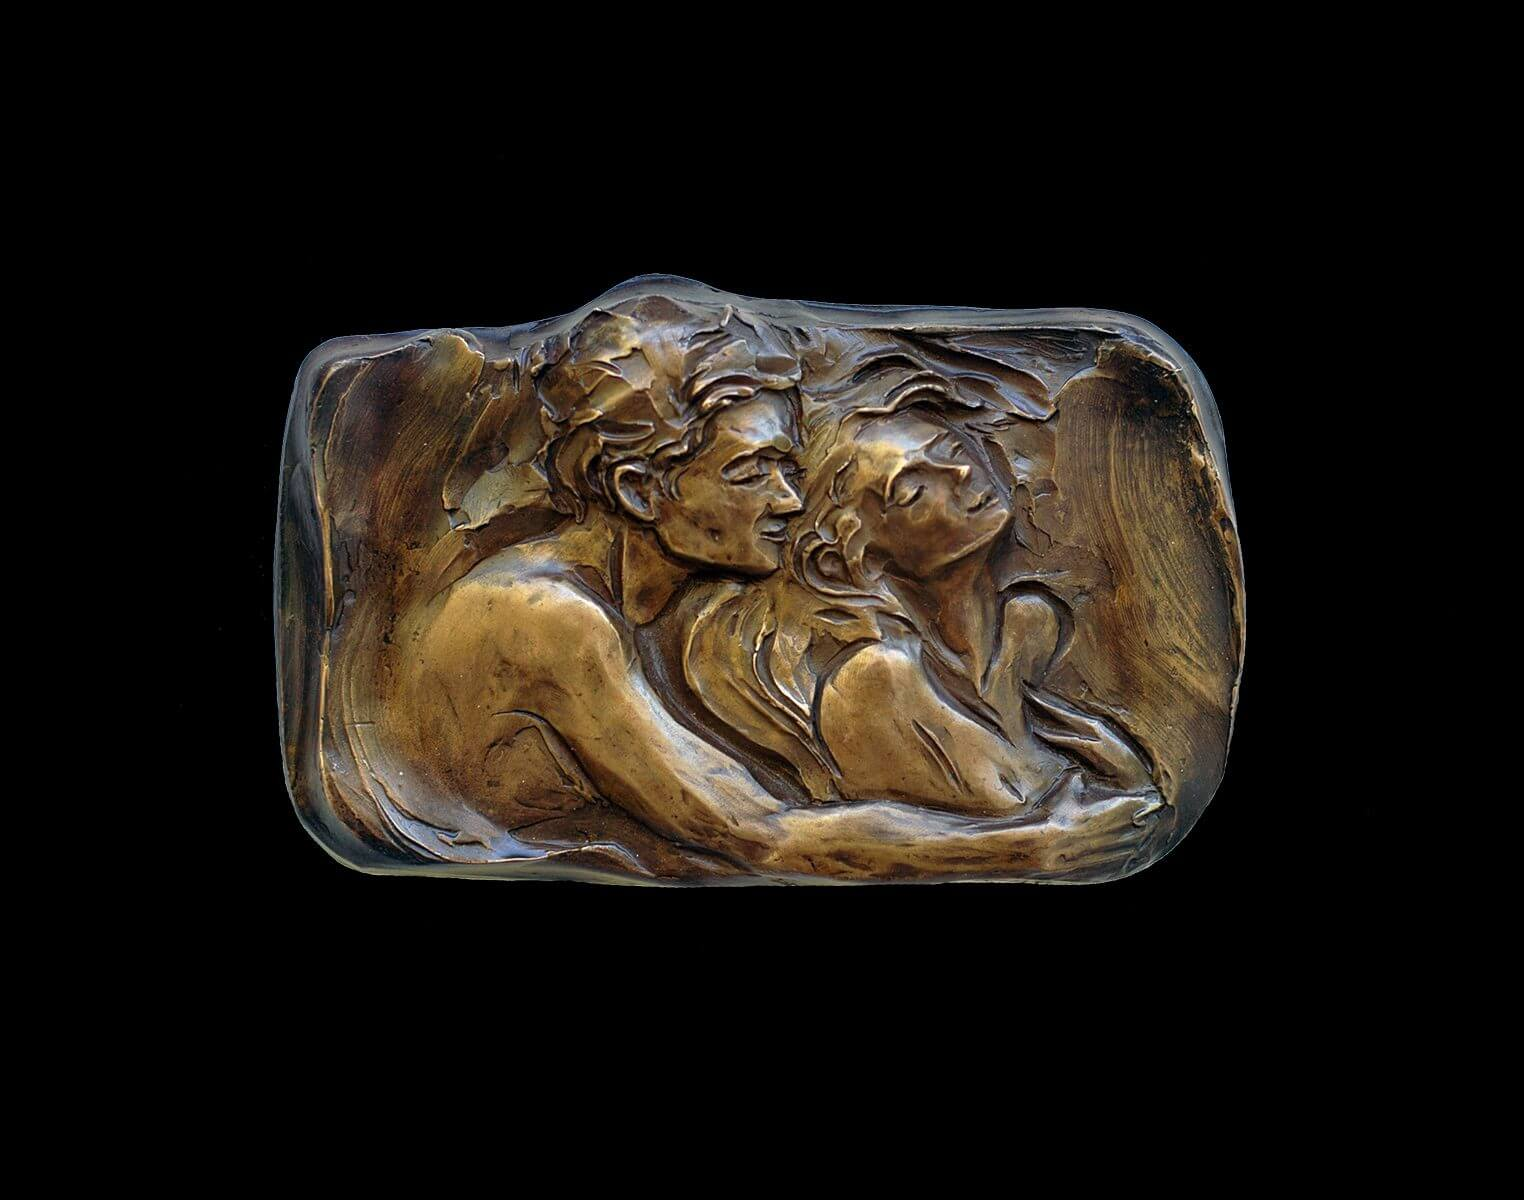 Whispers a bronze figurative relief wall sculpture by Andrew DeVries